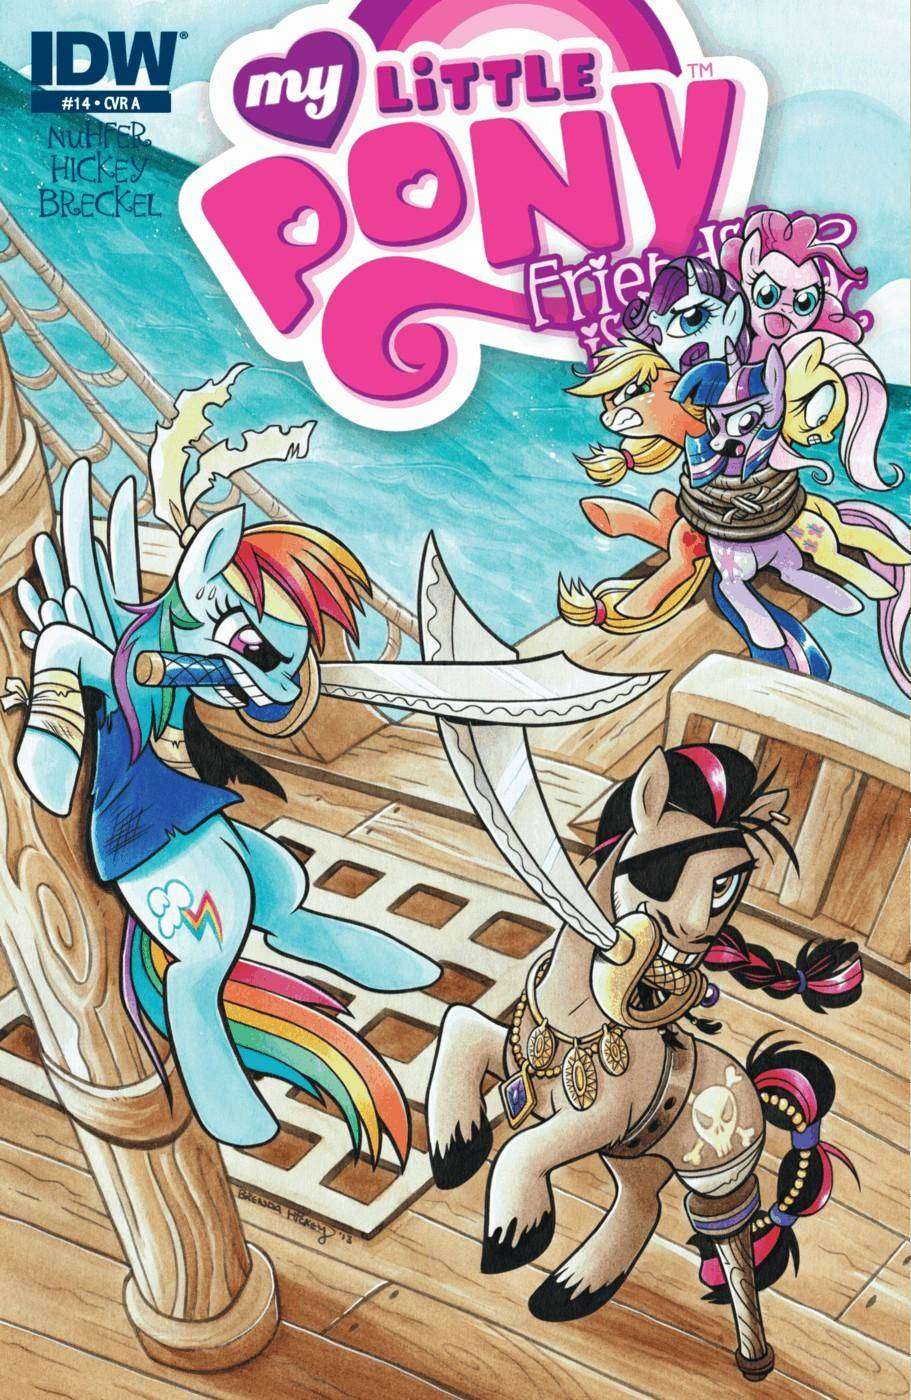 My Little Pony - Friendship is Magic 014 2013 2 covers digital